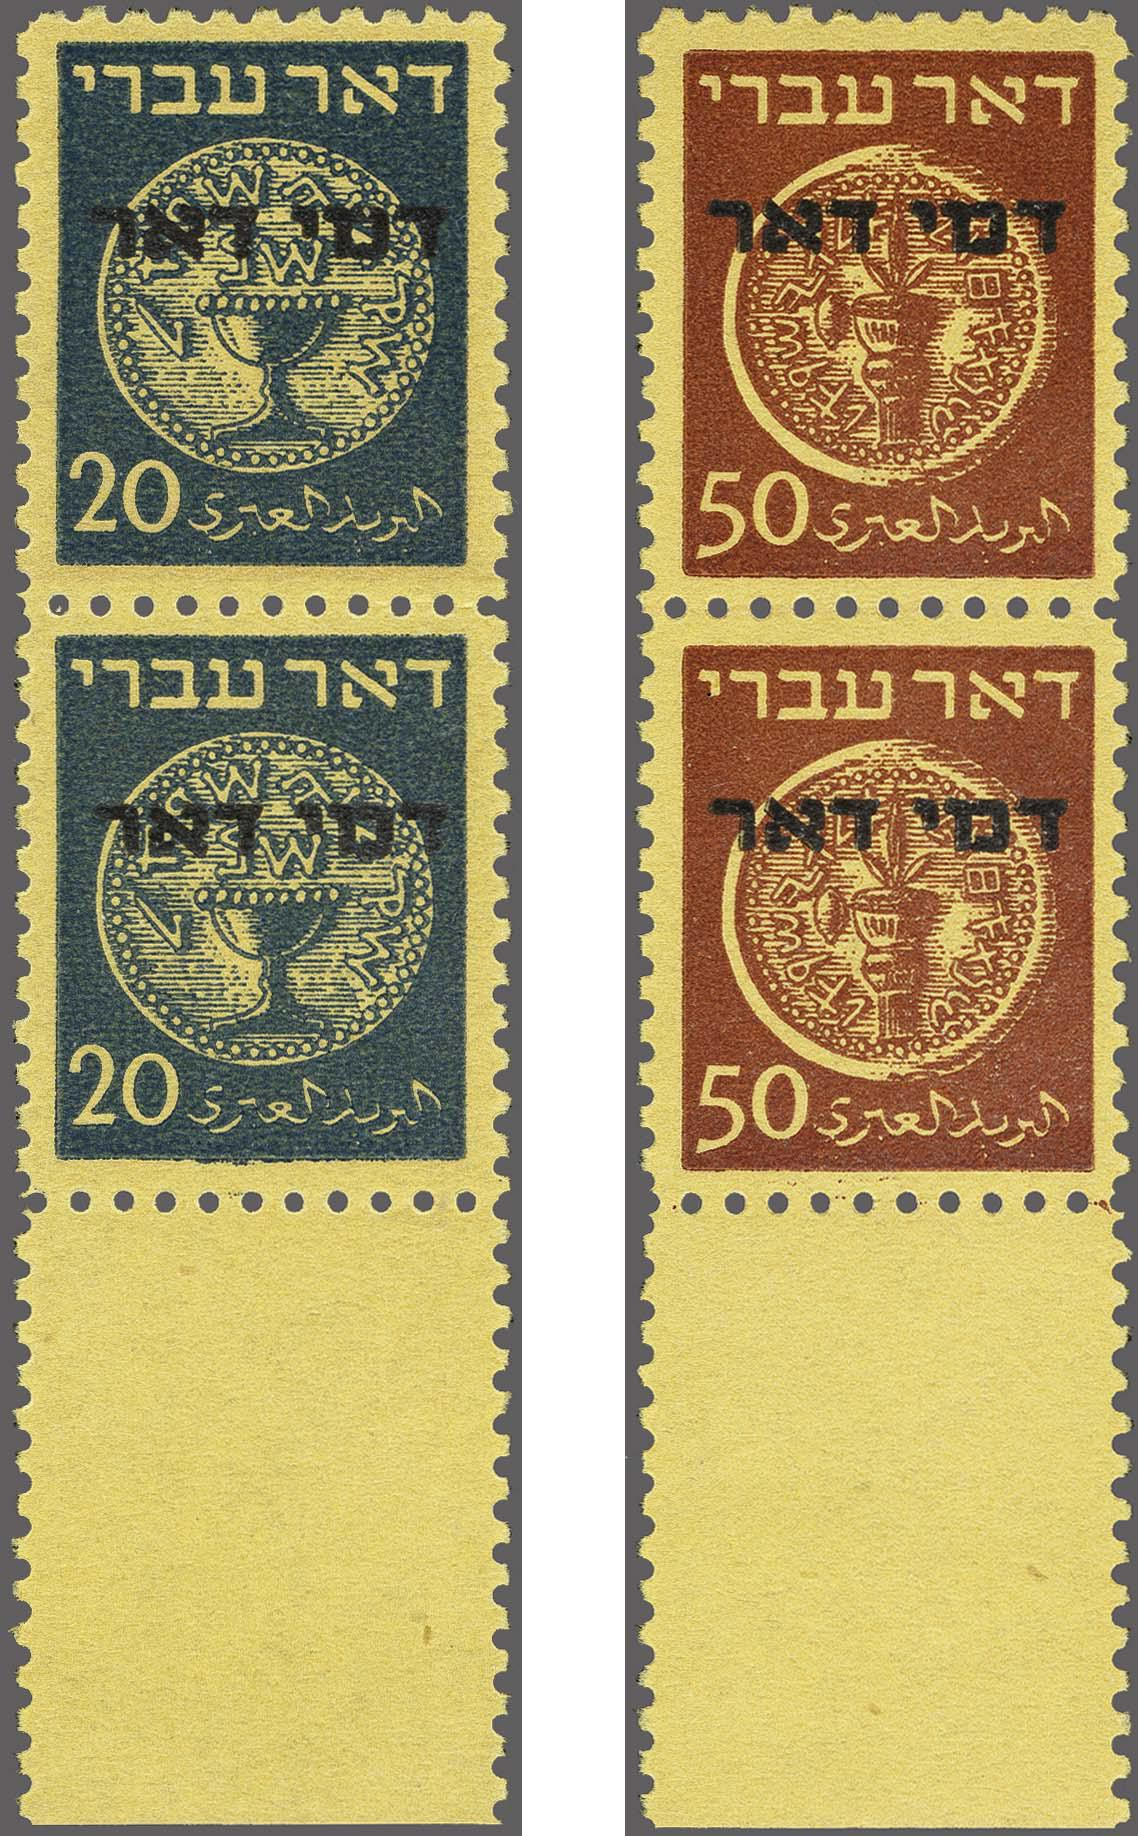 Lot 207 - Outside Europa Israel -  Corinphila Veilingen Auction 250-253 - Day 1 - Foreign countries